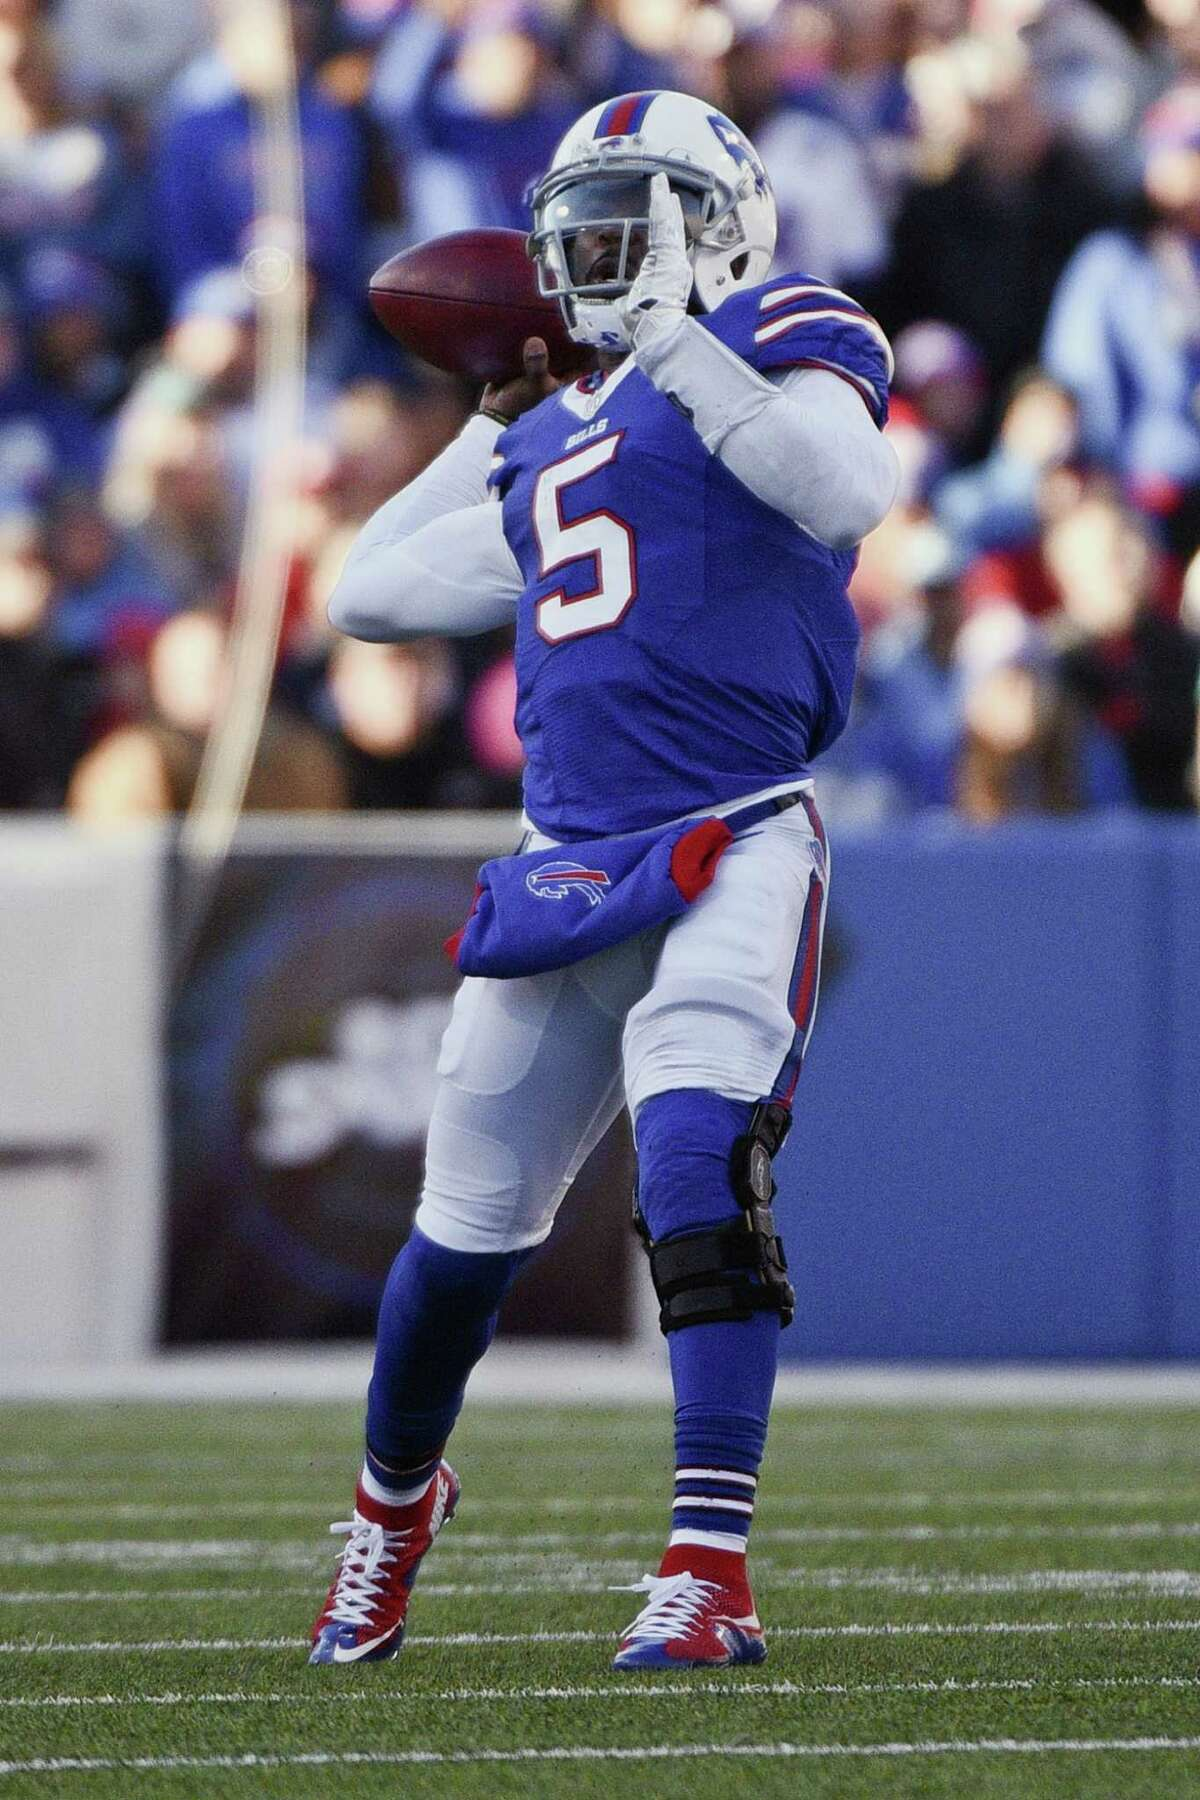 Buffalo Bills quarterback Tyrod Taylor throws a pass to Sammy Watkins for a touchdown during the second half of an NFL football game Sunday, Nov. 8, 2015, in Orchard Park, N.Y. (AP Photo/Gary Wiepert) ORG XMIT: NYFF116